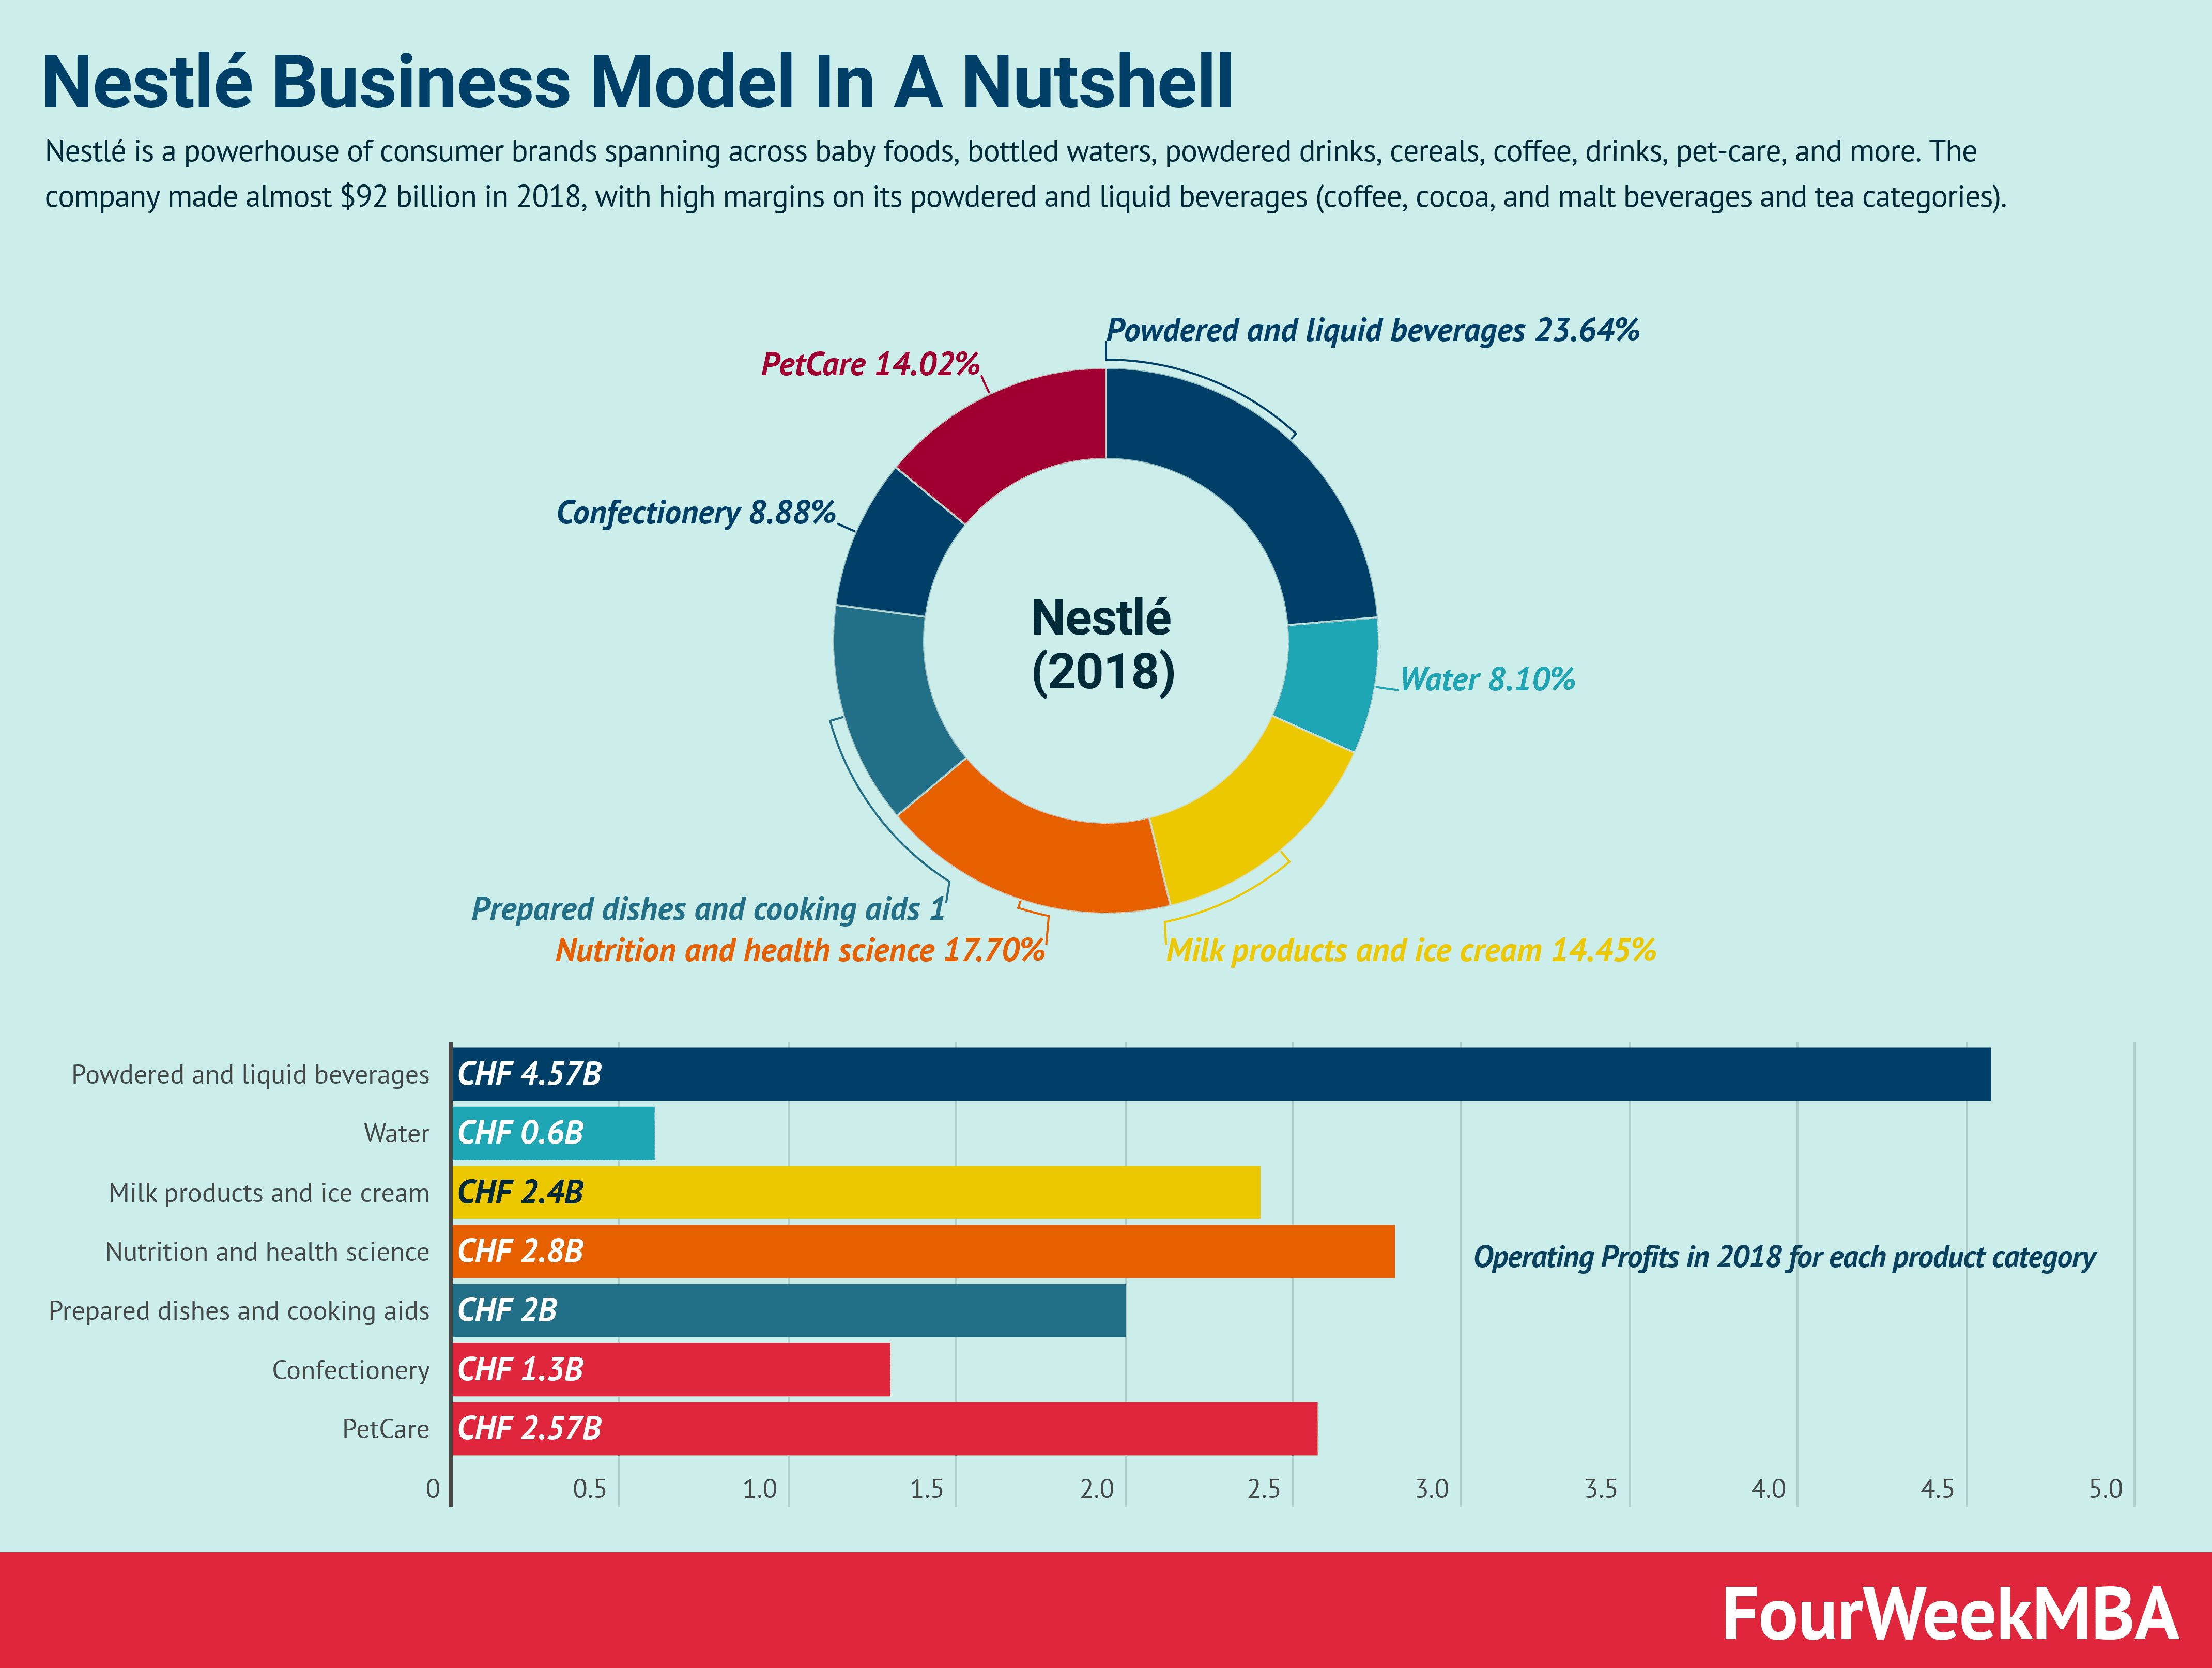 Why Nestlé Business Model Is Mostly About The Powder